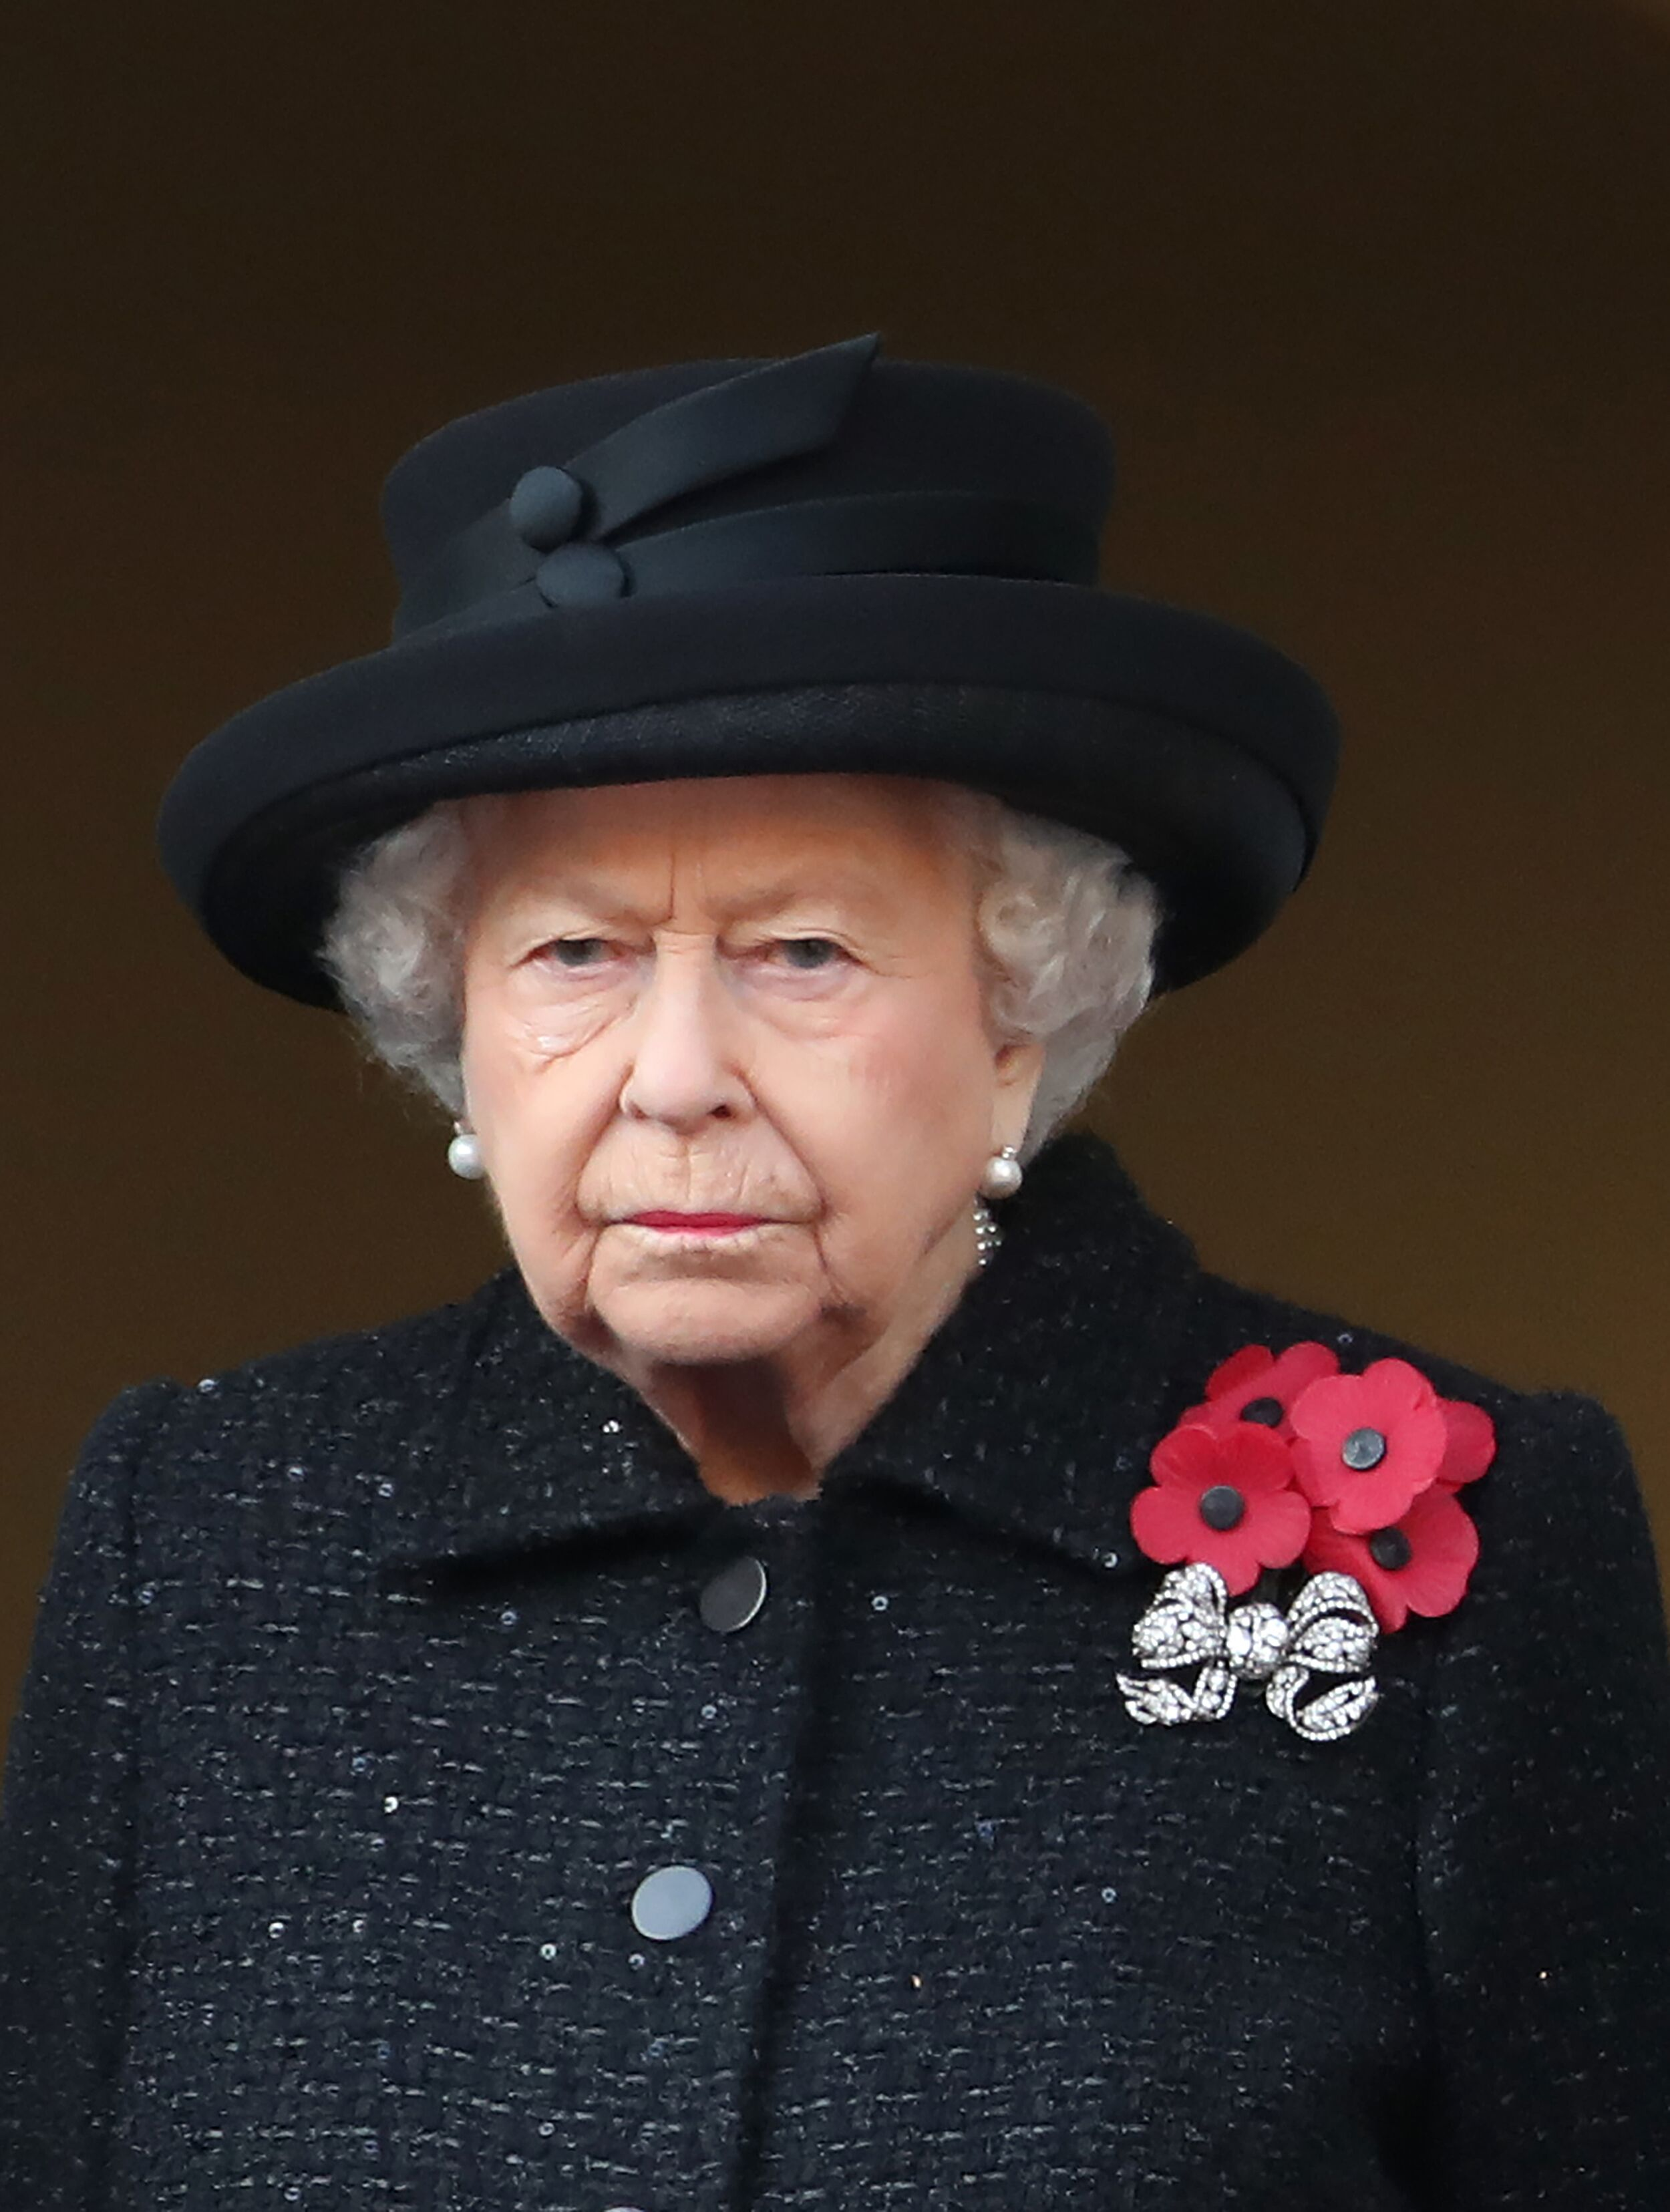 Queen Elizabeth II at the annual Remembrance Sunday memorial at The Cenotaph on November 10, 2019, in London, England | Photo: Chris Jackson/Getty Images